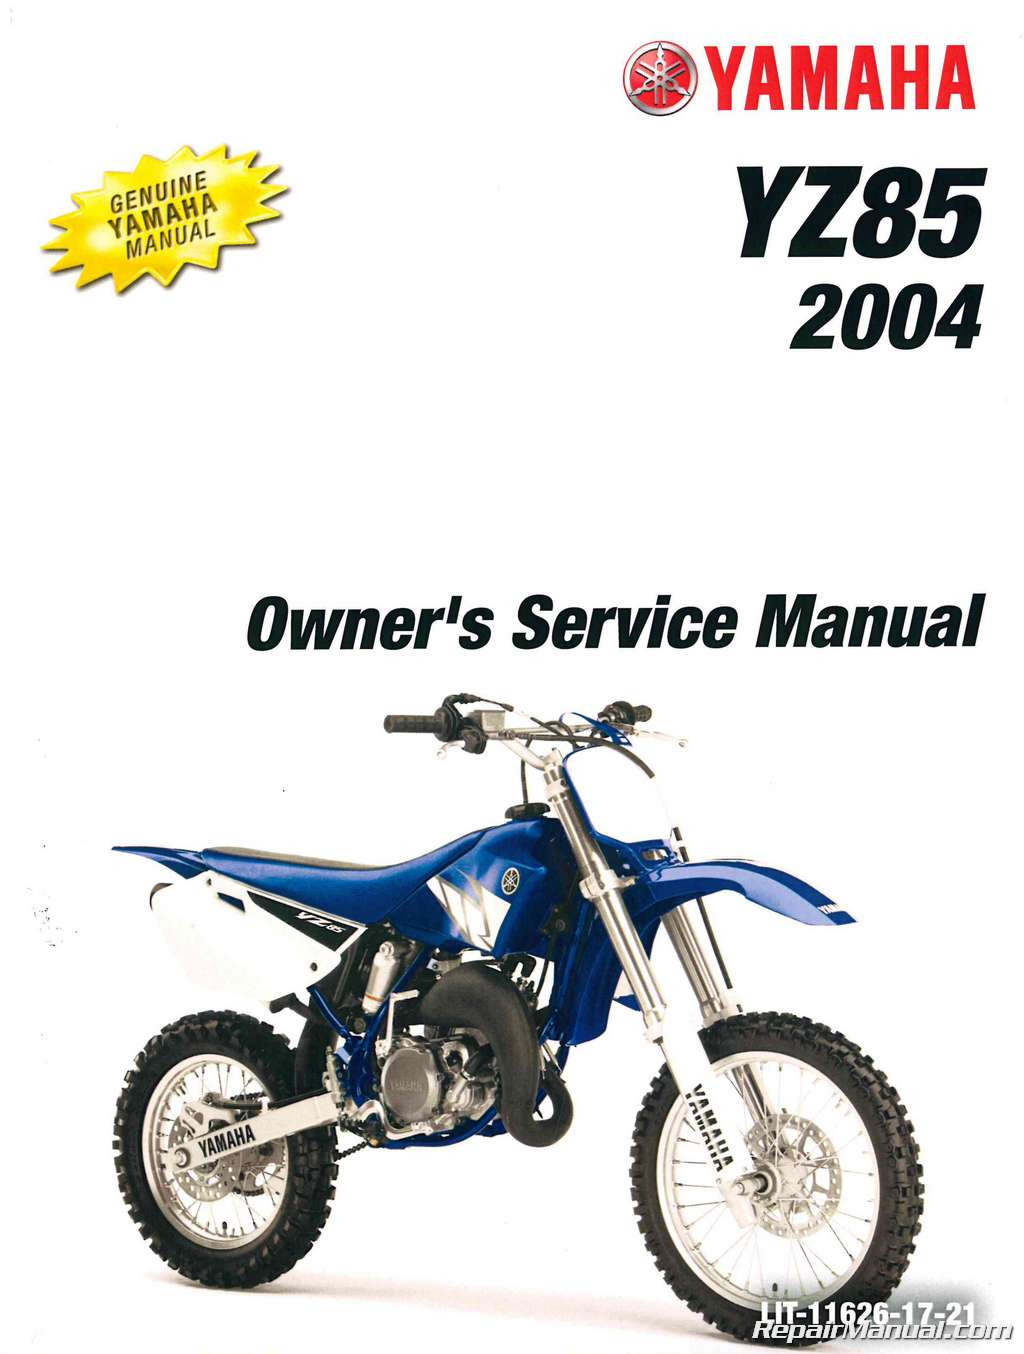 2006 Yamaha Yz85 Owners Manual 03 Dodge Caravan Wiring Schematics 8421 2004 Yz85s Motorcycle Service Rh Repairmanual Com Yz250f